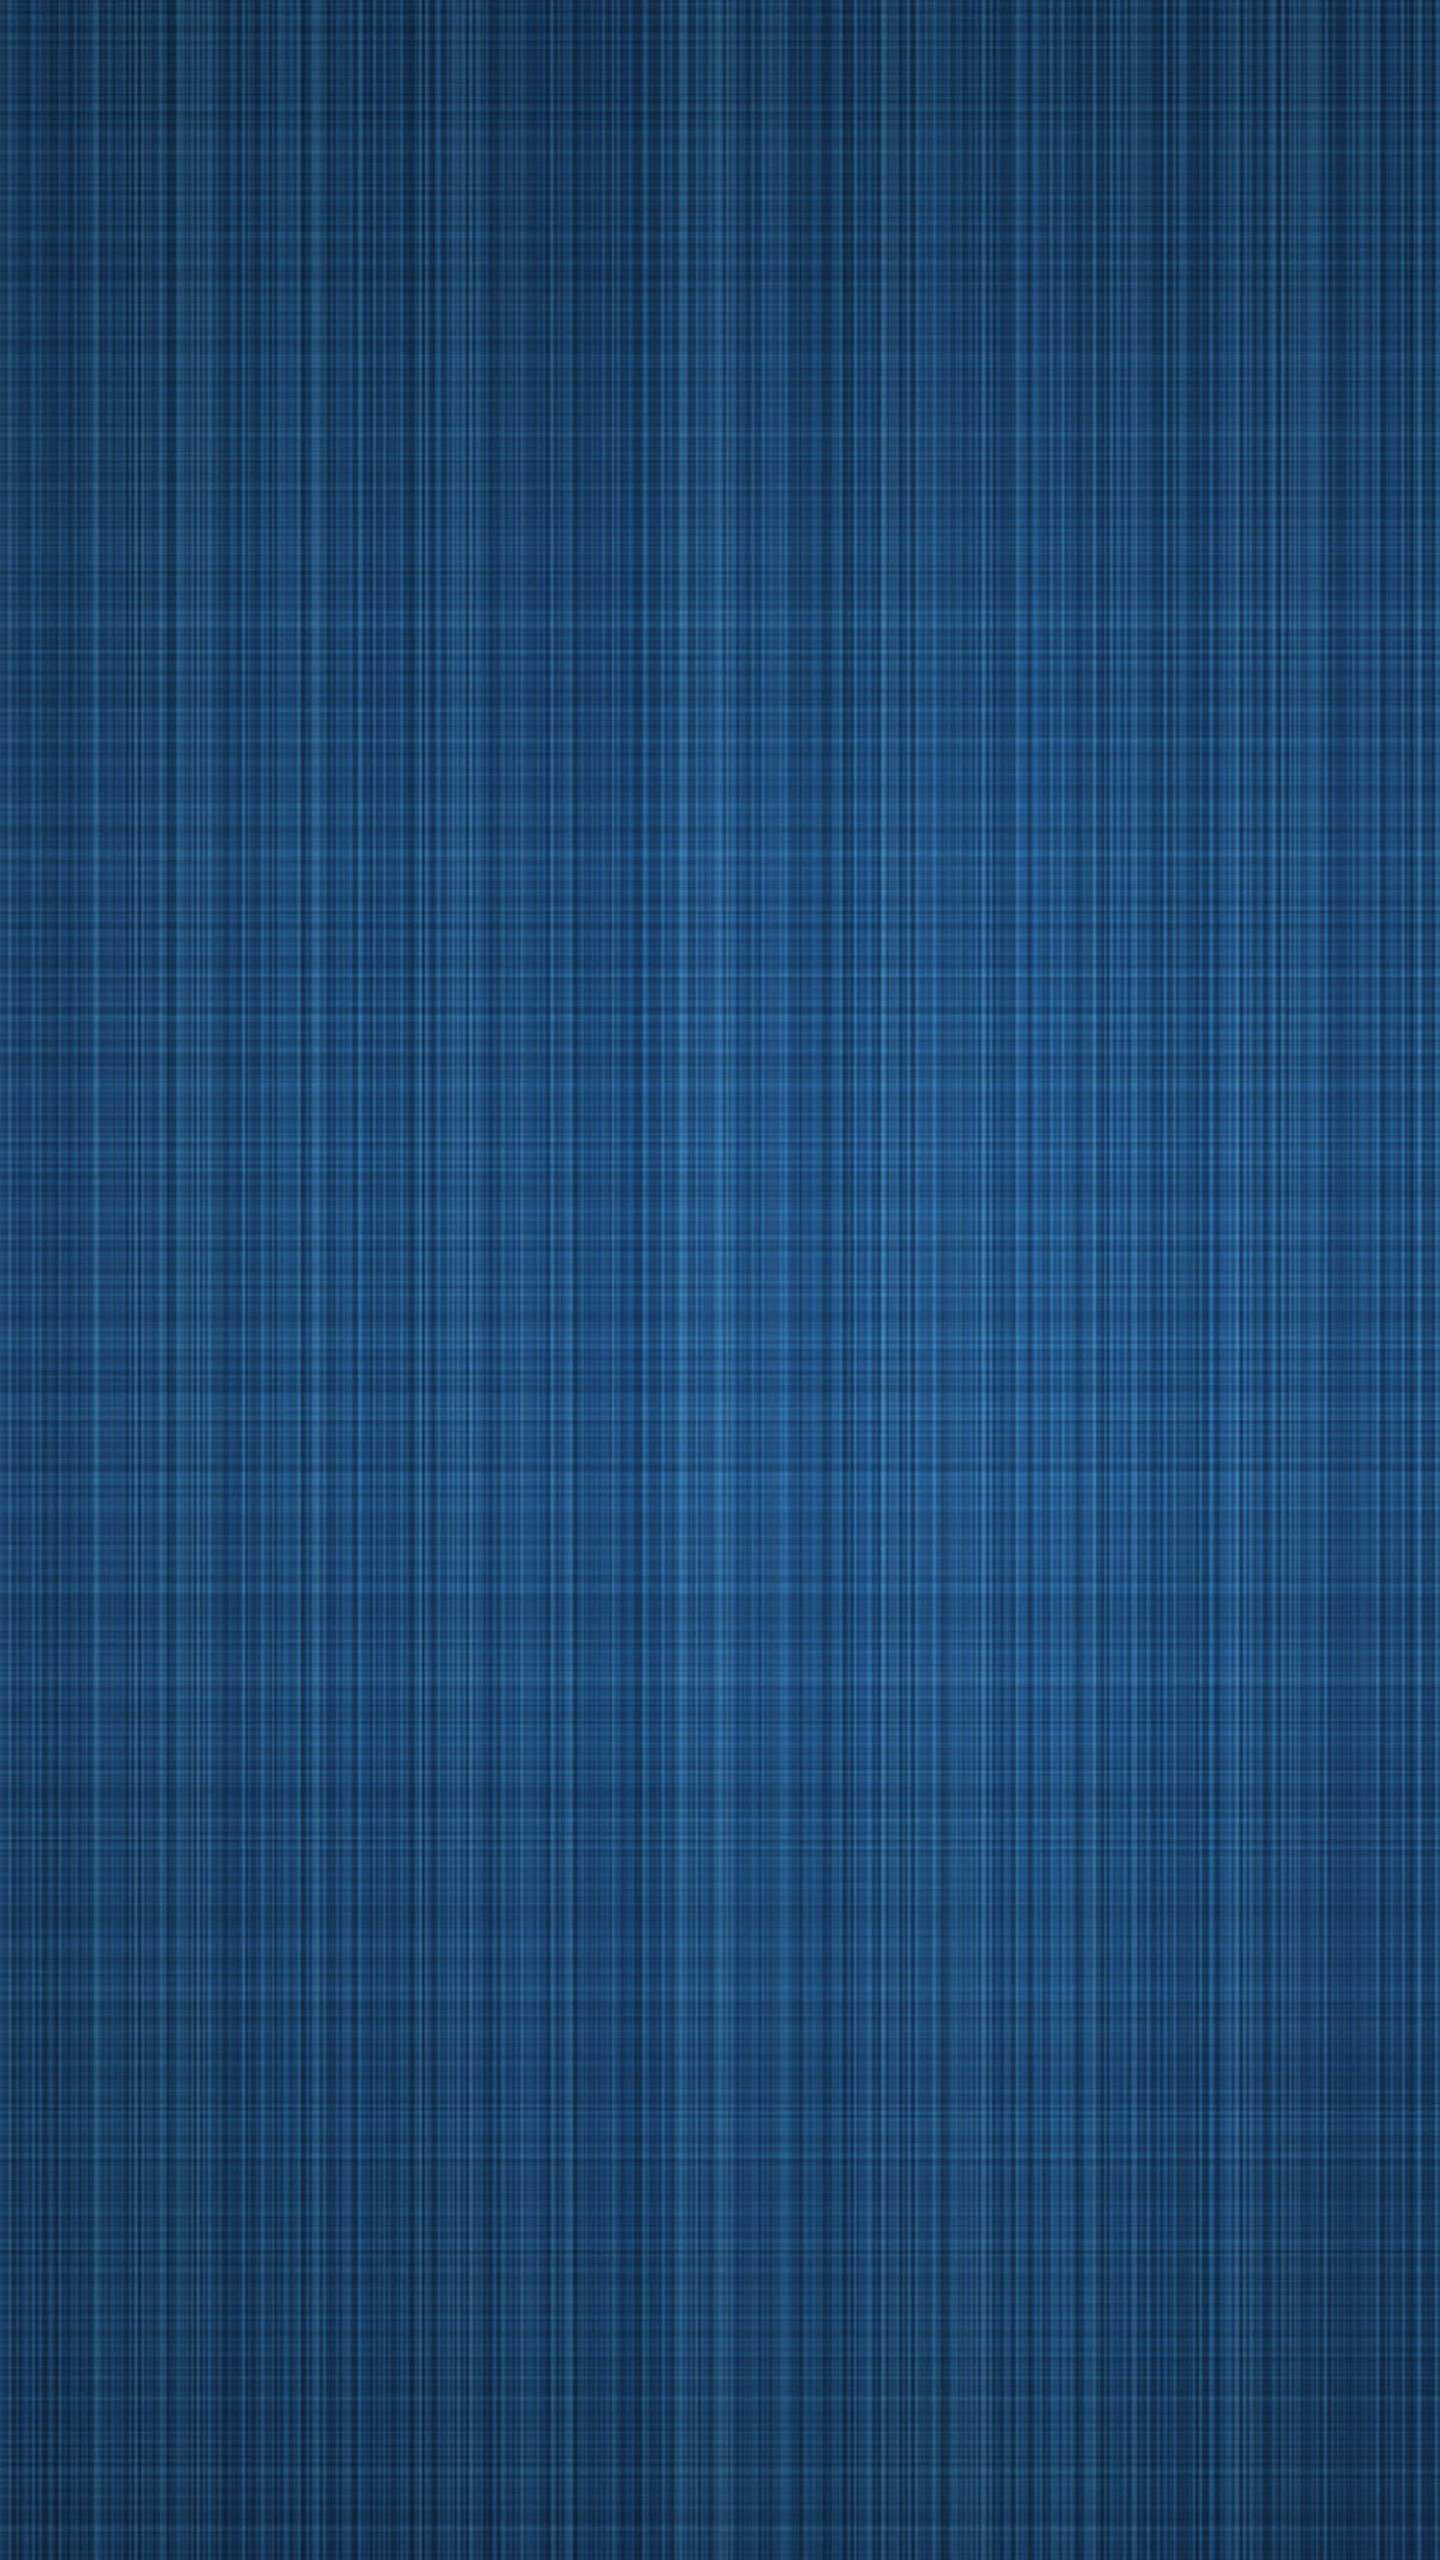 Samsung Galaxy S3 Wallpaper For Iphone